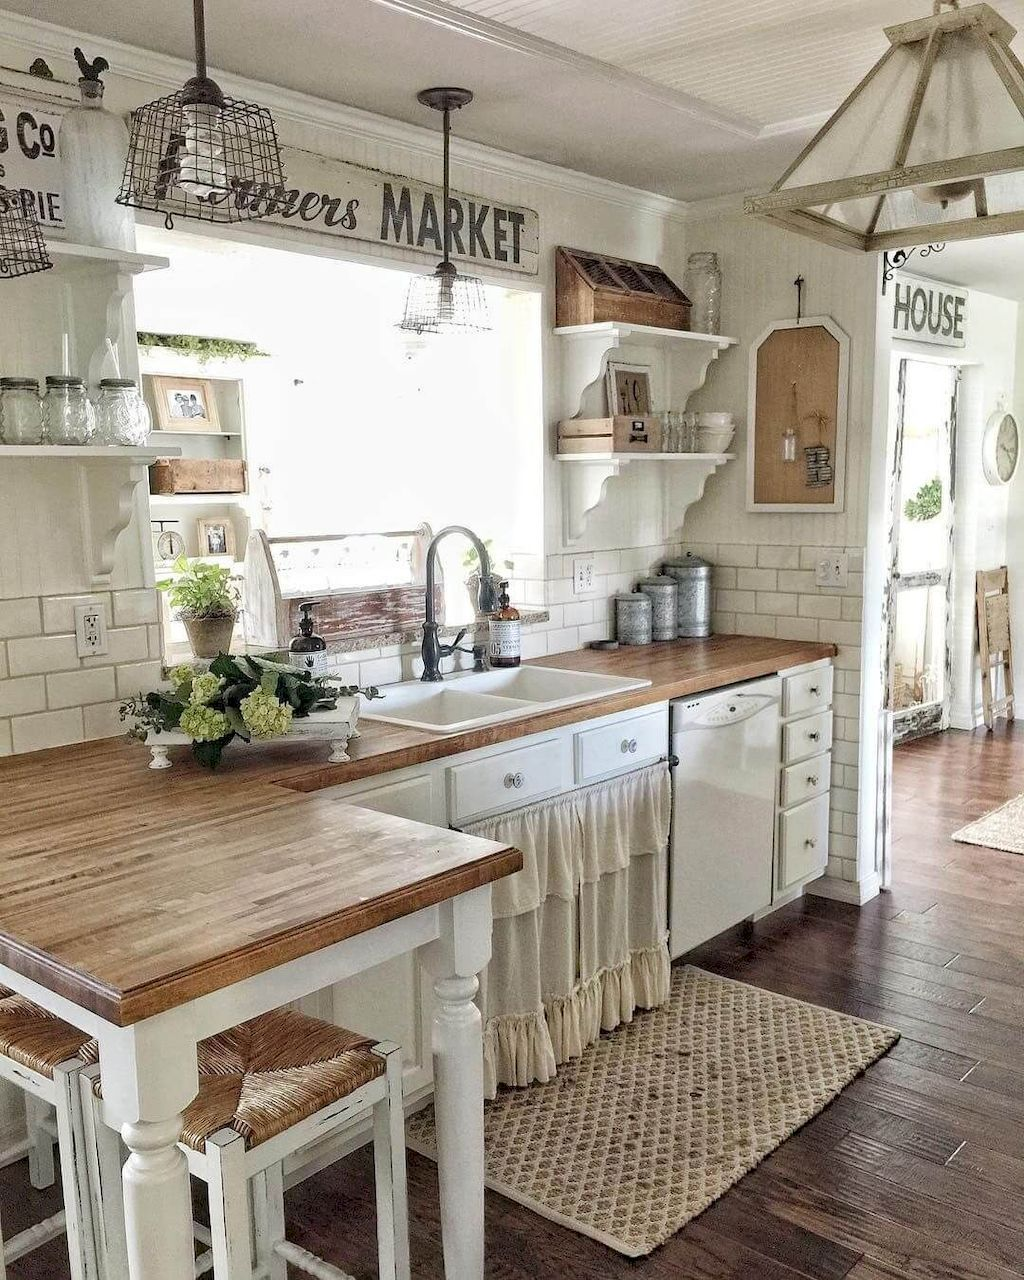 Best rustic farmhouse kitchen cabinets in list 71 house - Farmhouse style kitchen cabinets ...